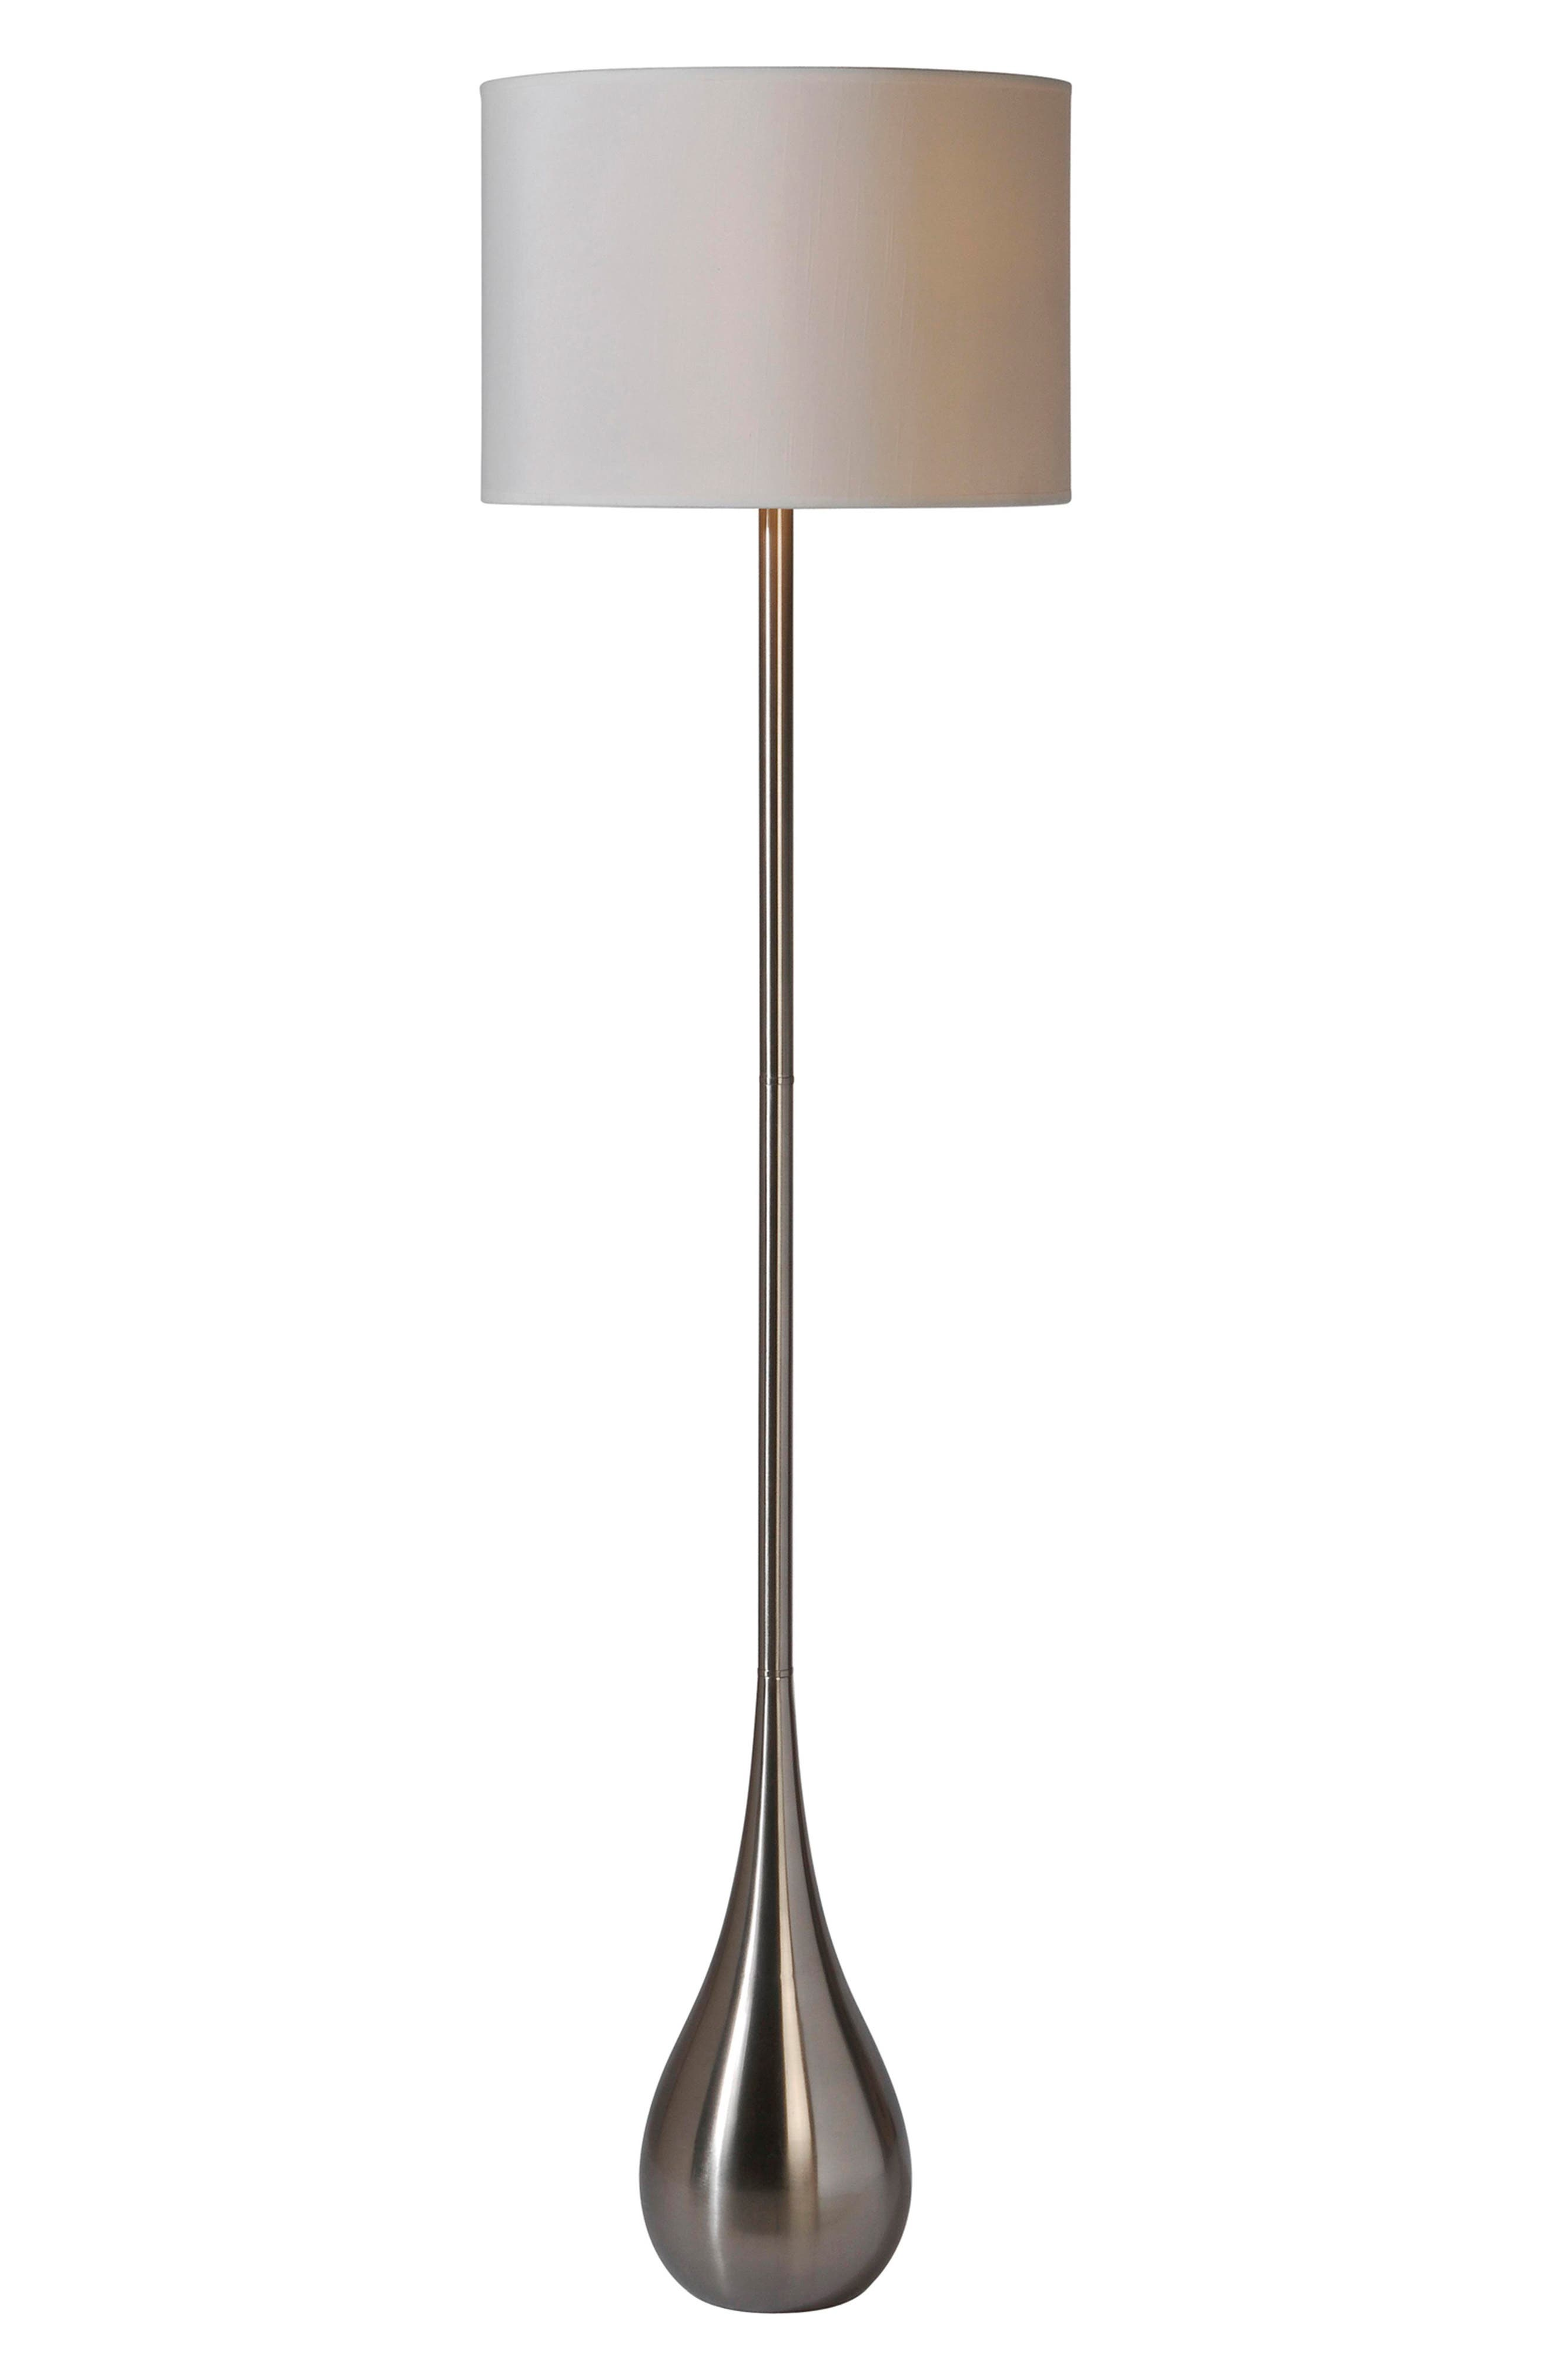 Satin Nickel Floor Lamp,                         Main,                         color, Satin Nickel